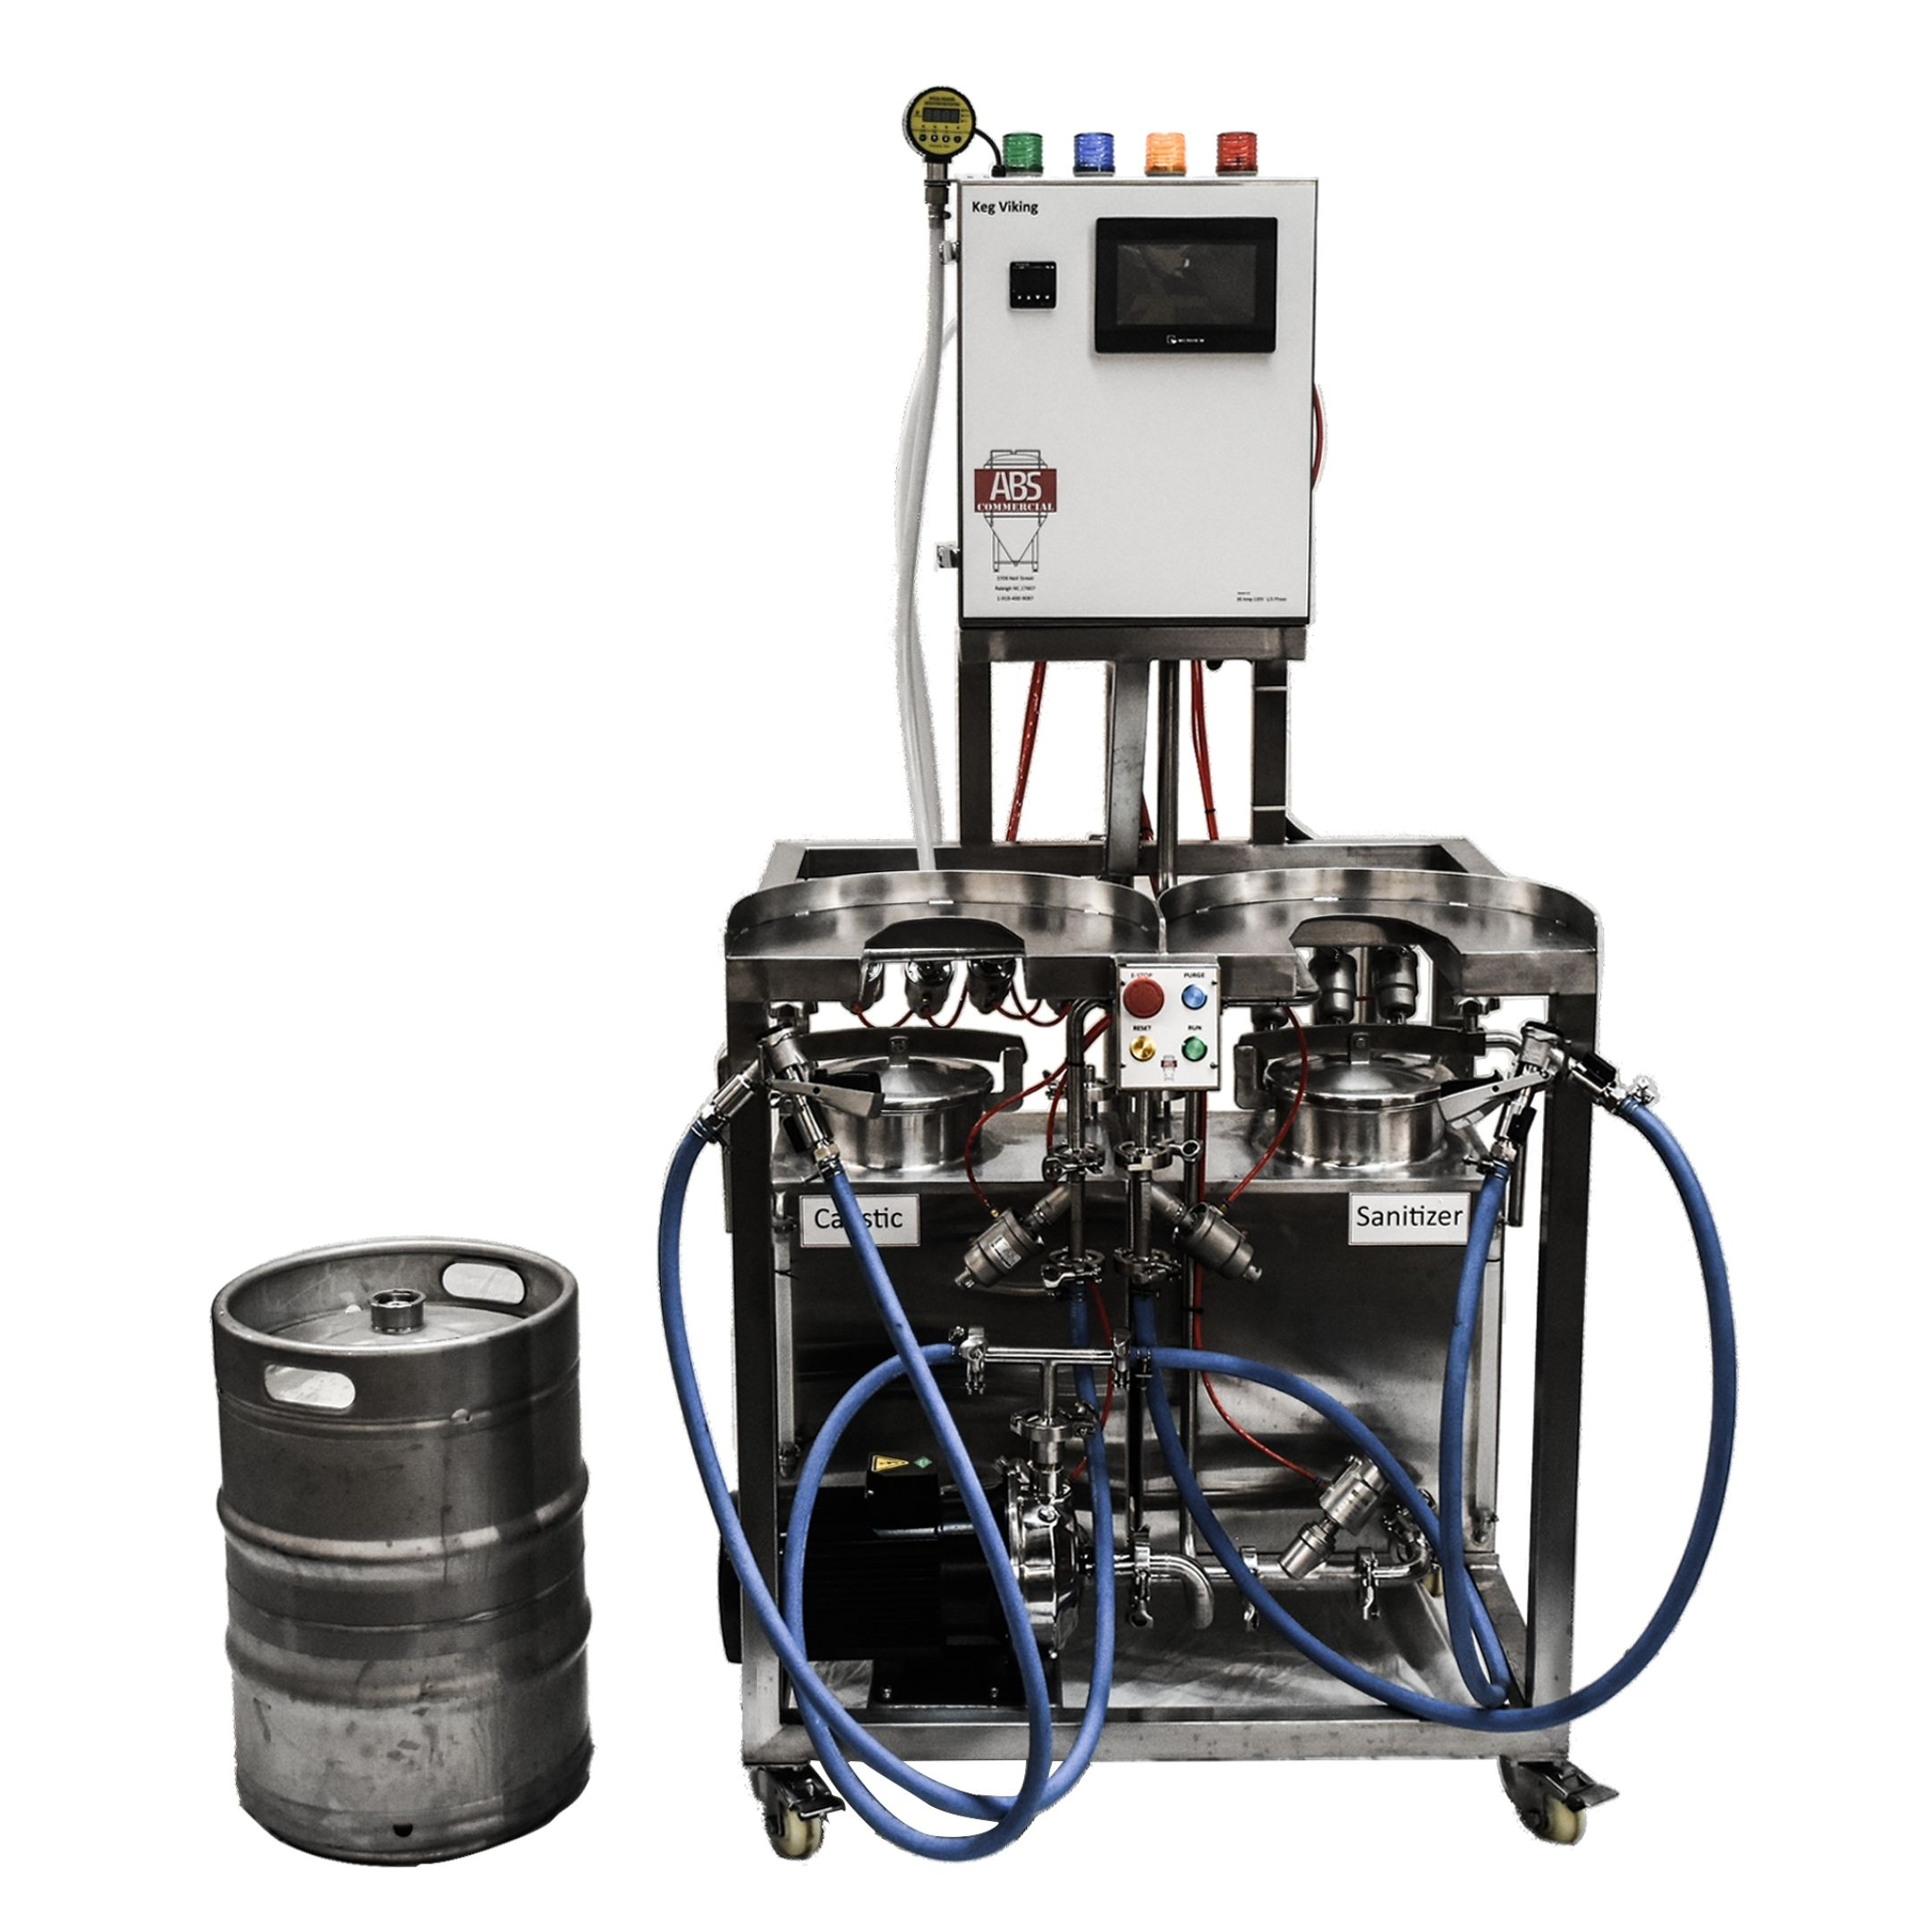 keg washer, keg viking, commercial keg washer, abs commercial